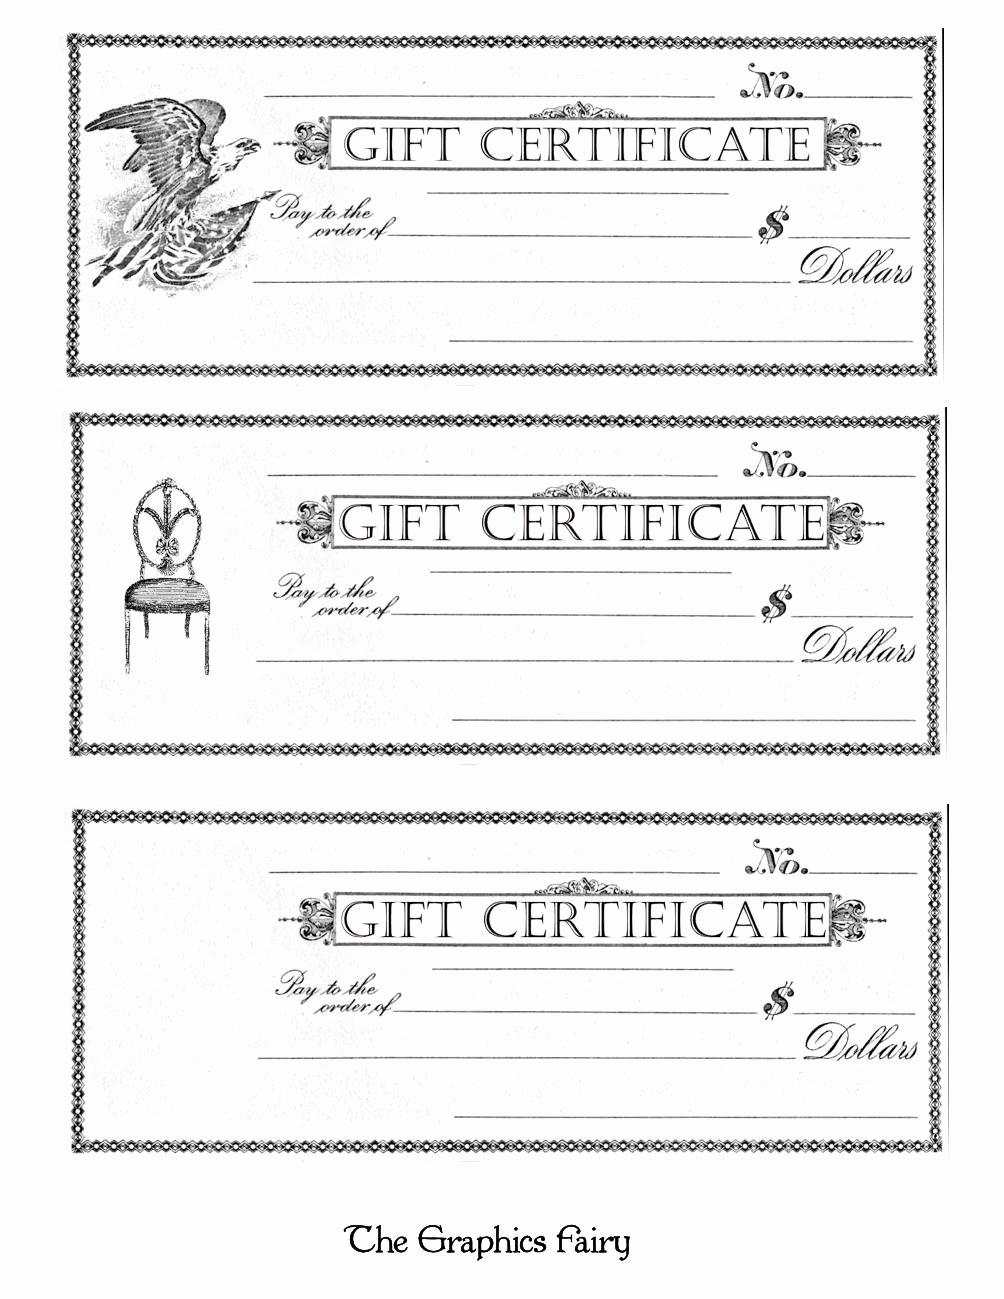 Printable Blank Gift Certificate Template Best Of Free Printable Gift Certificates the Graphics Fairy